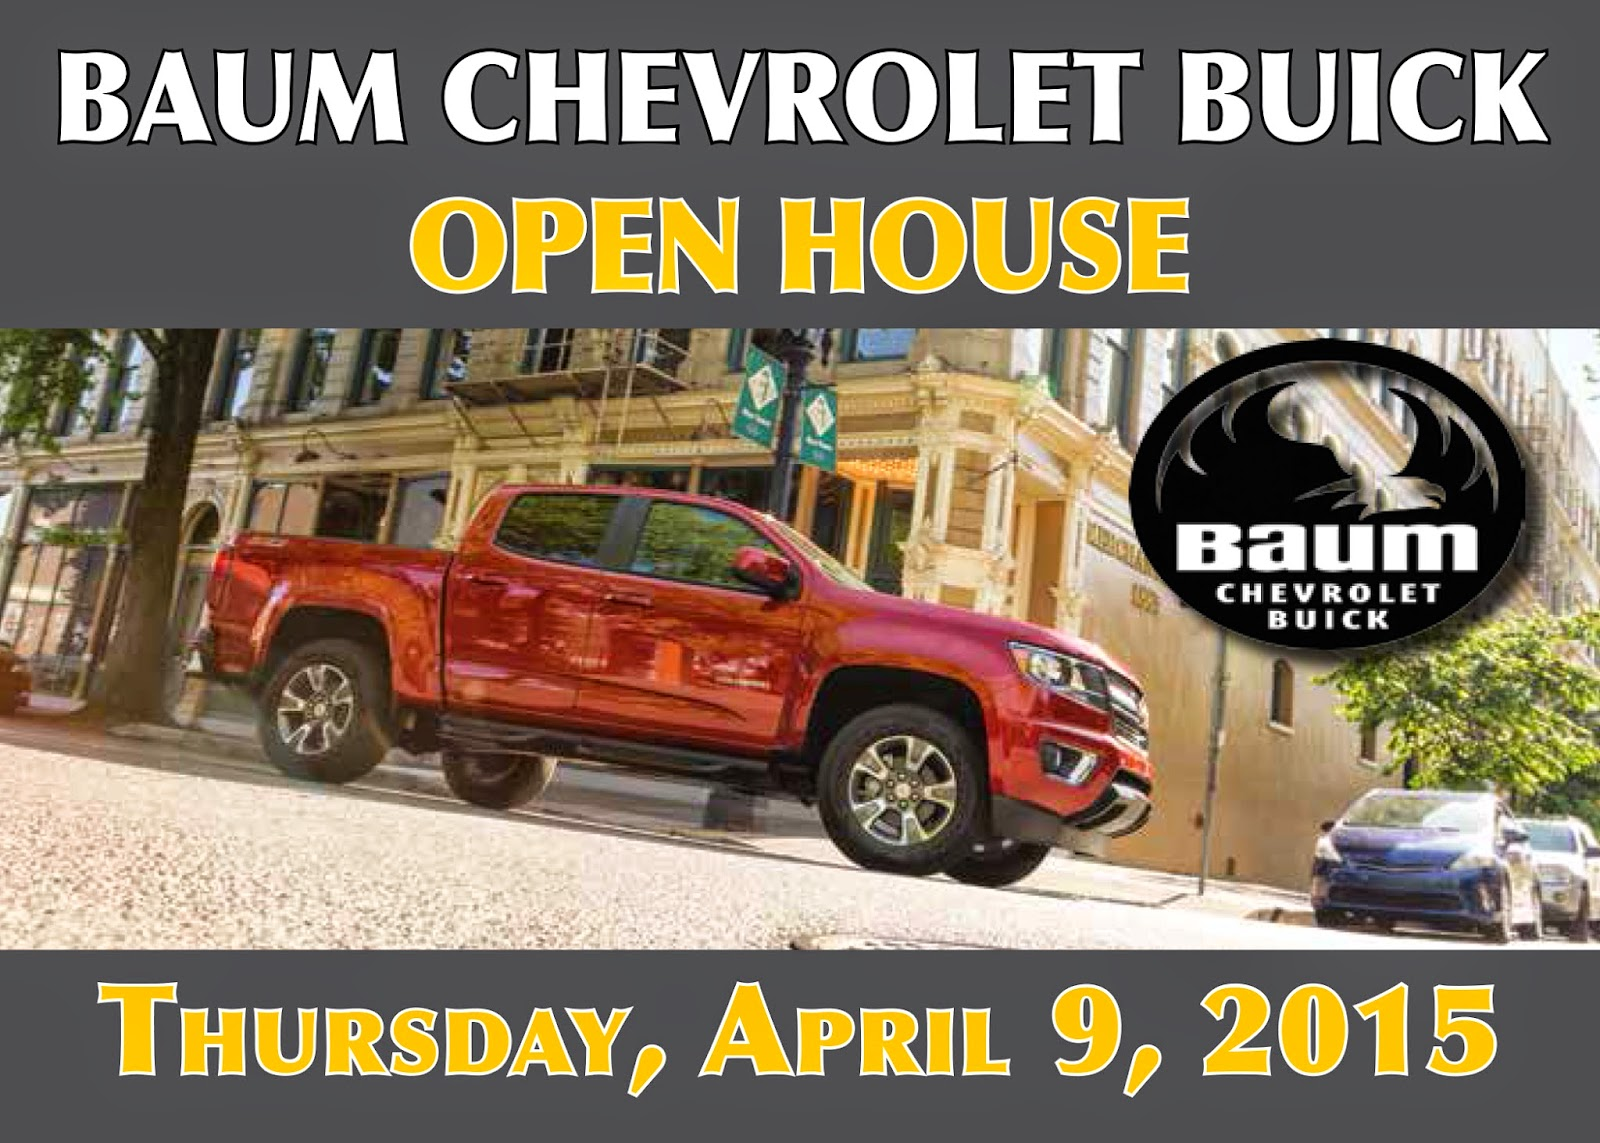 Baum Chevrolet Buick Open House